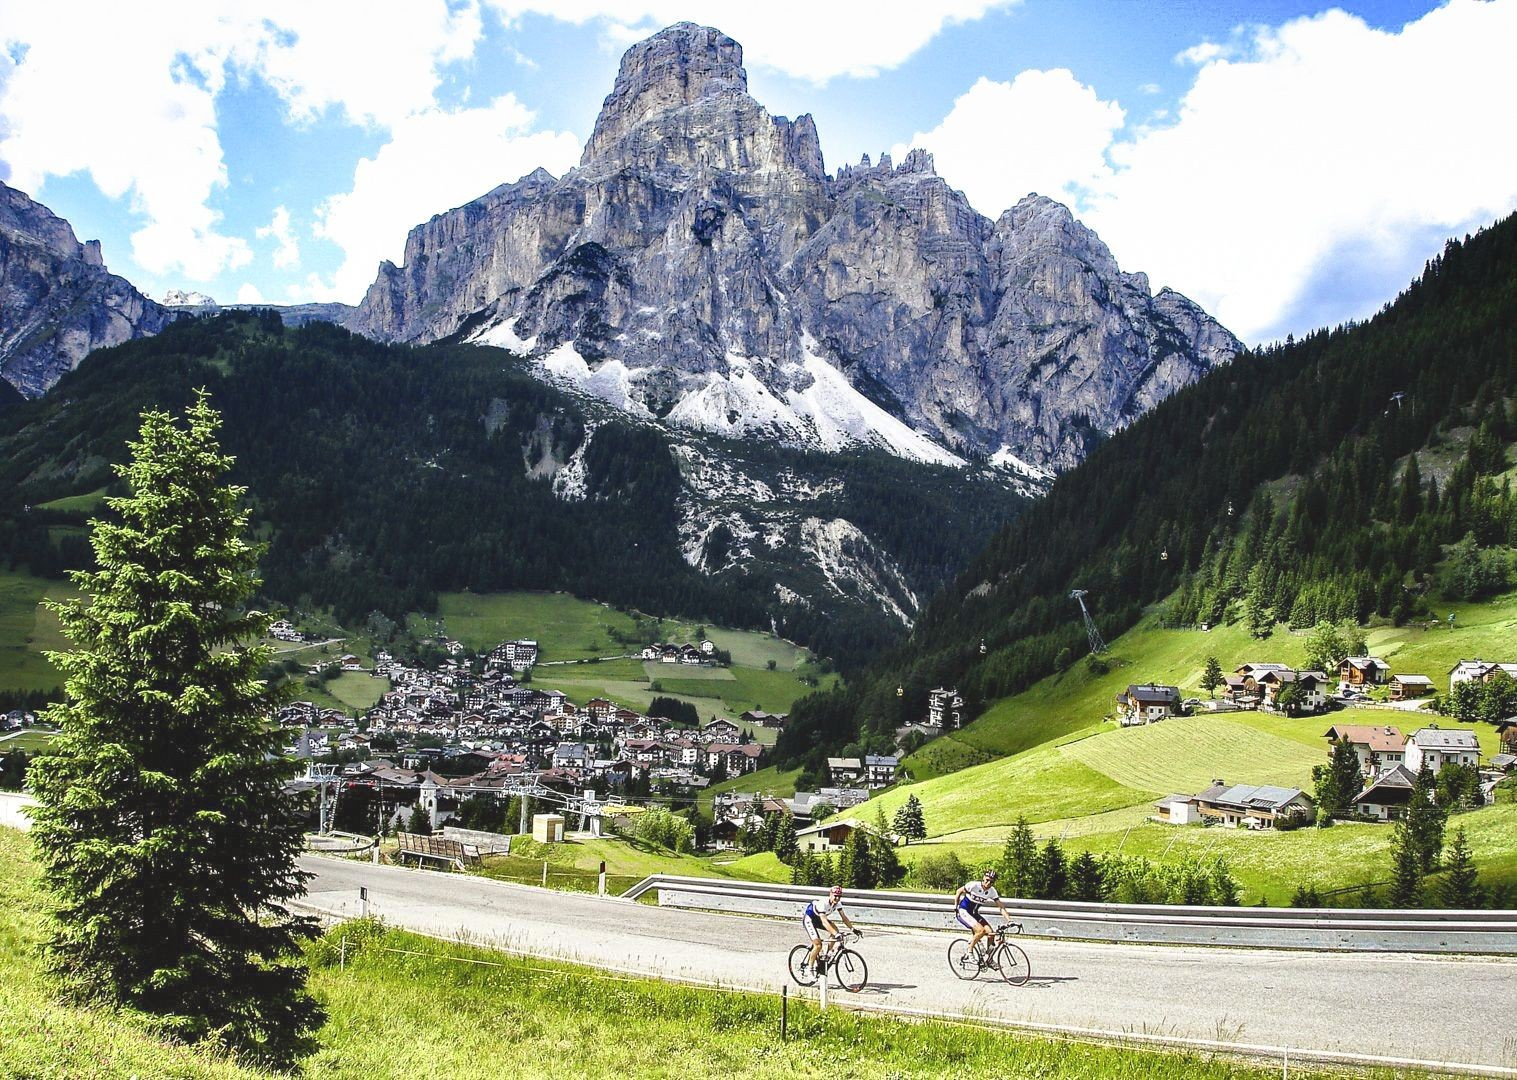 mountain-dolomites-of-italy-by-road-bike.jpg - Italy - Alps and Dolomites - Giants of the Giro - Guided Road Cycling Holiday - Road Cycling